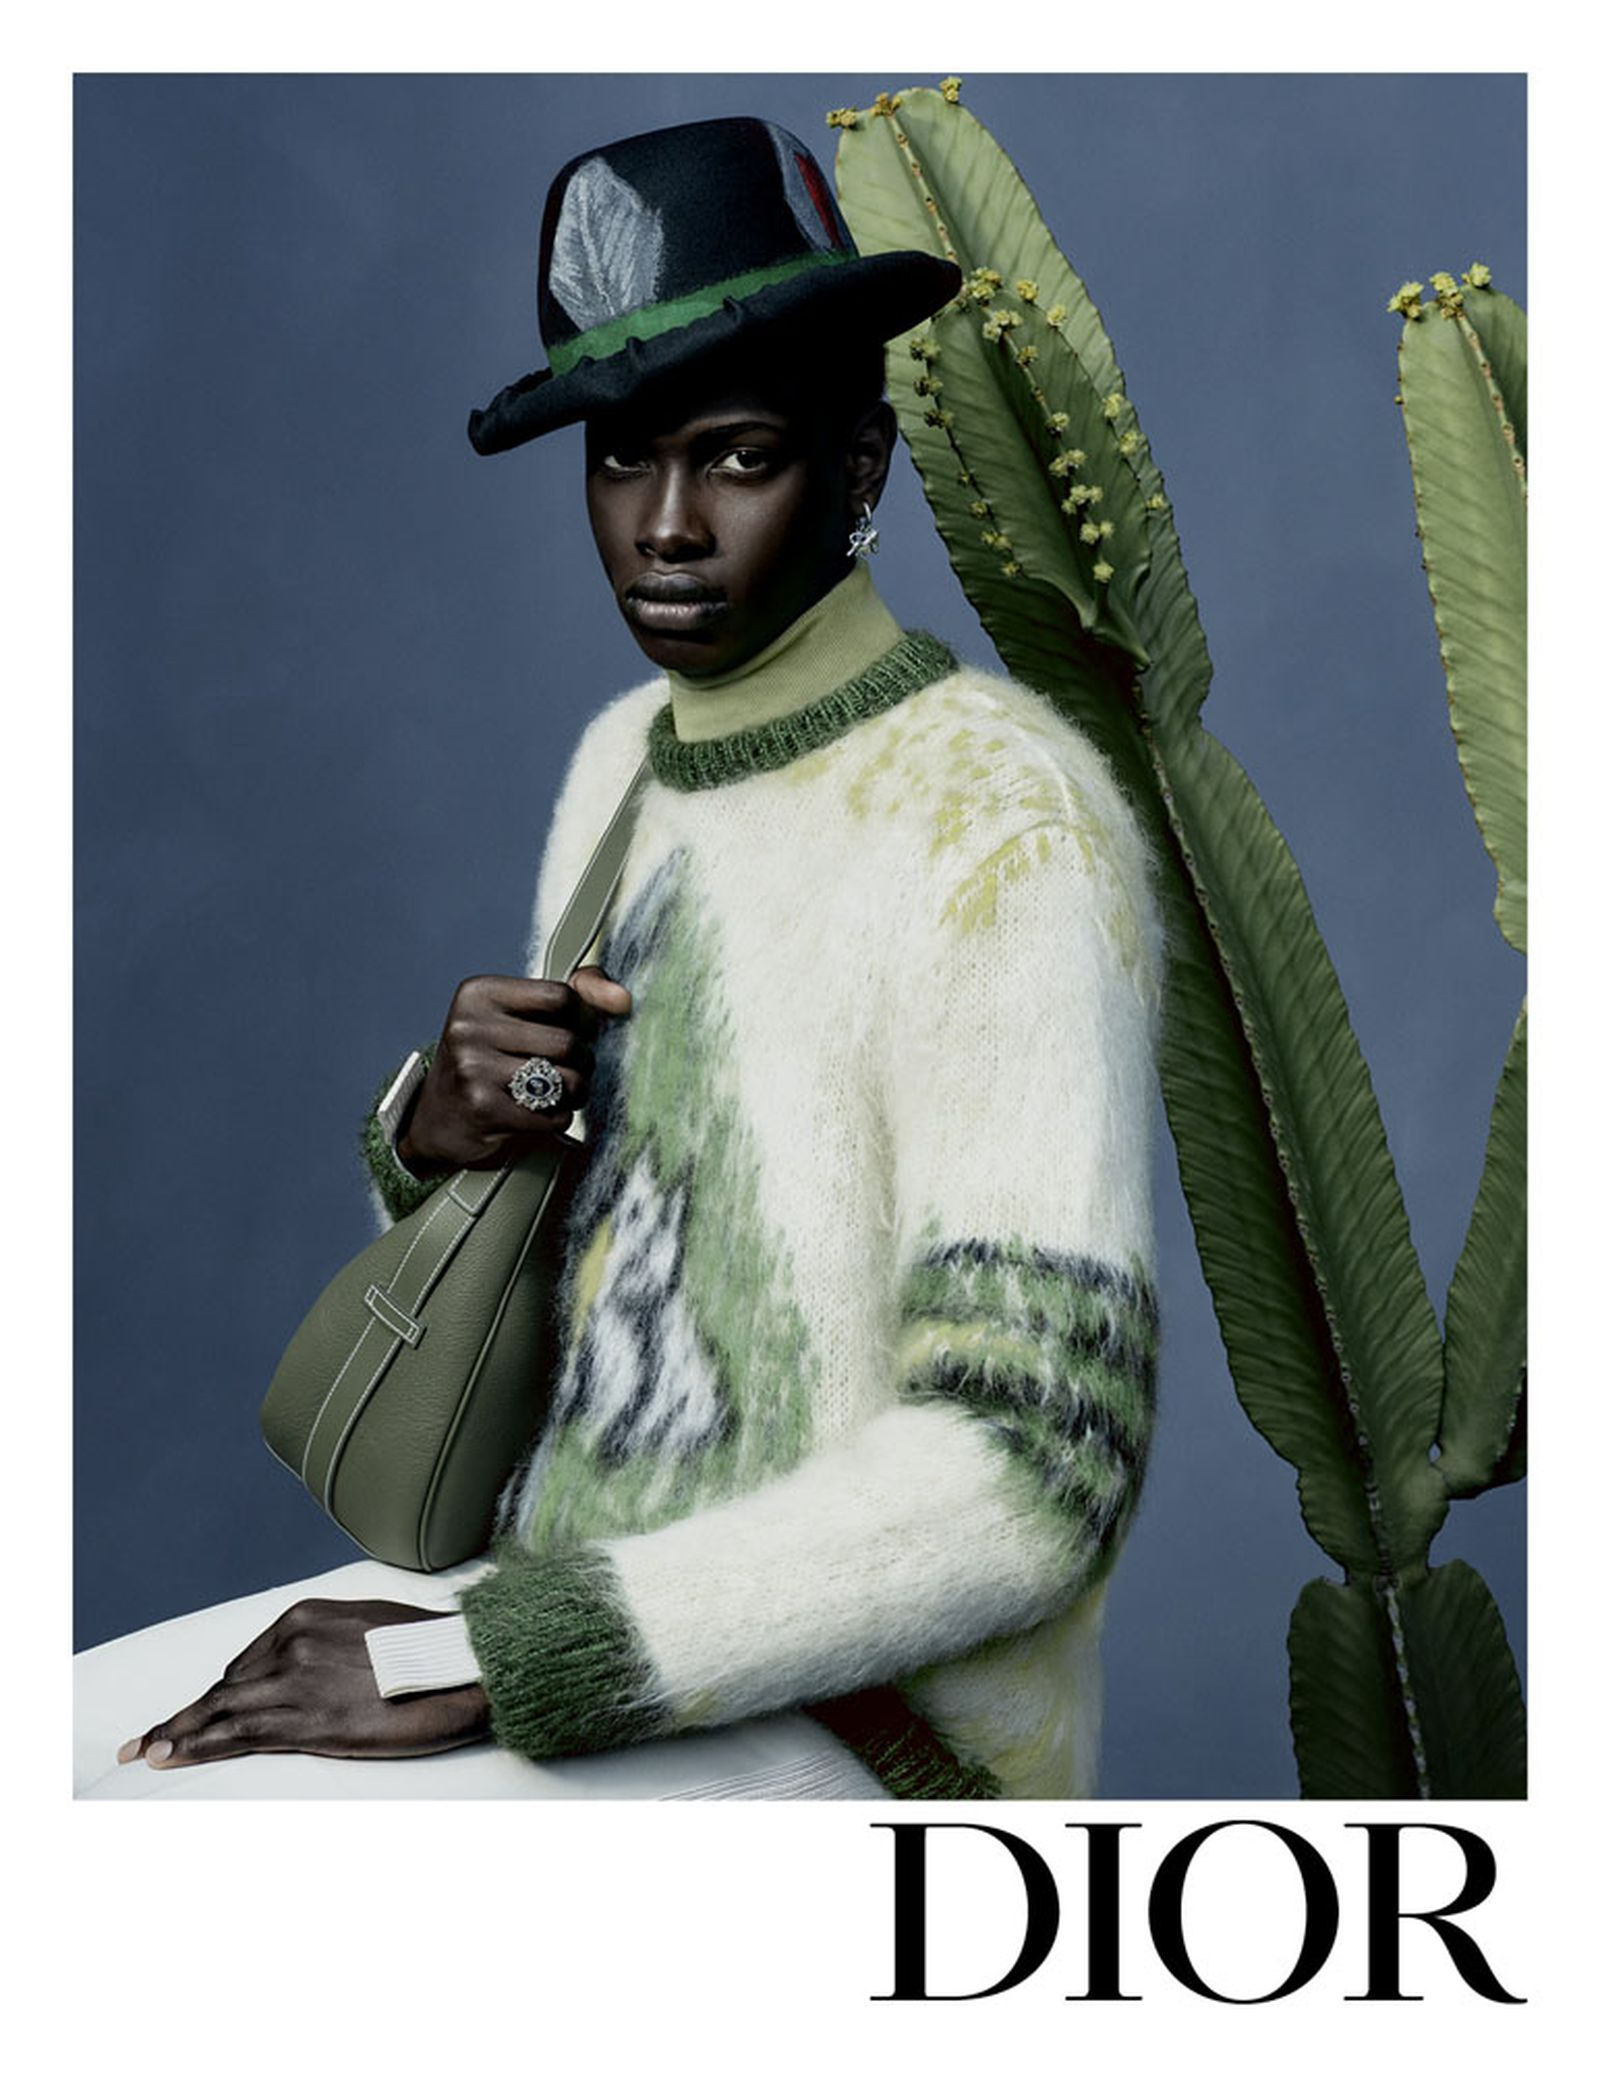 dior-mens-winter-2021-campain-peter-doig-collaboration-06